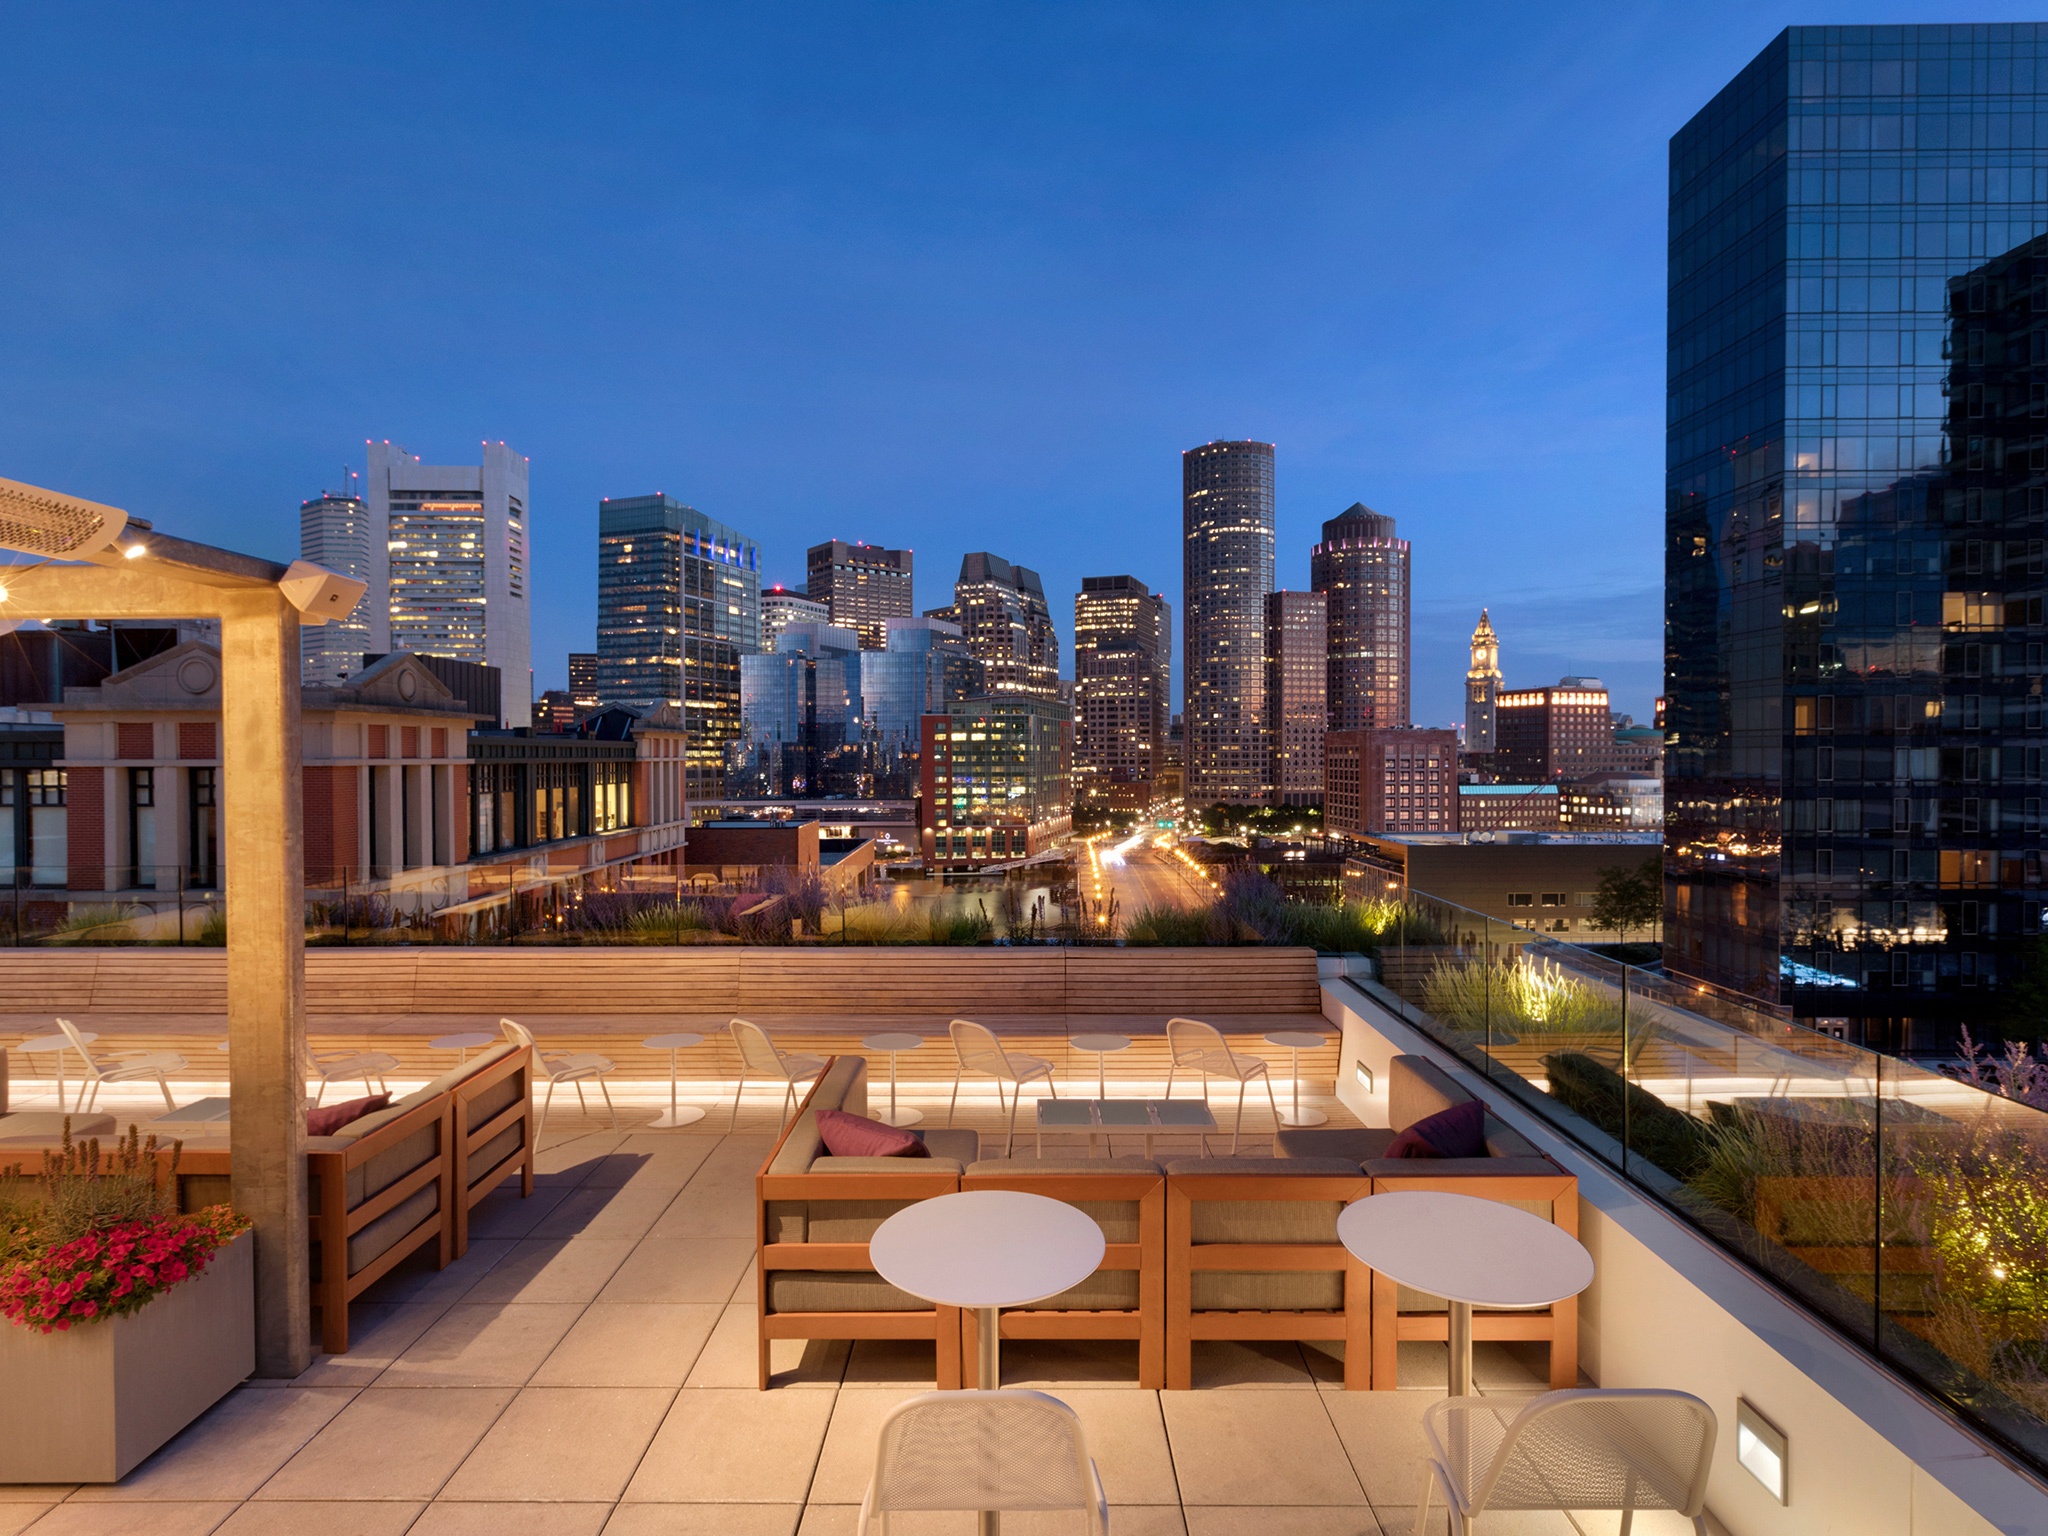 13 Best Rooftop Bars In Boston For Summertime Drinking